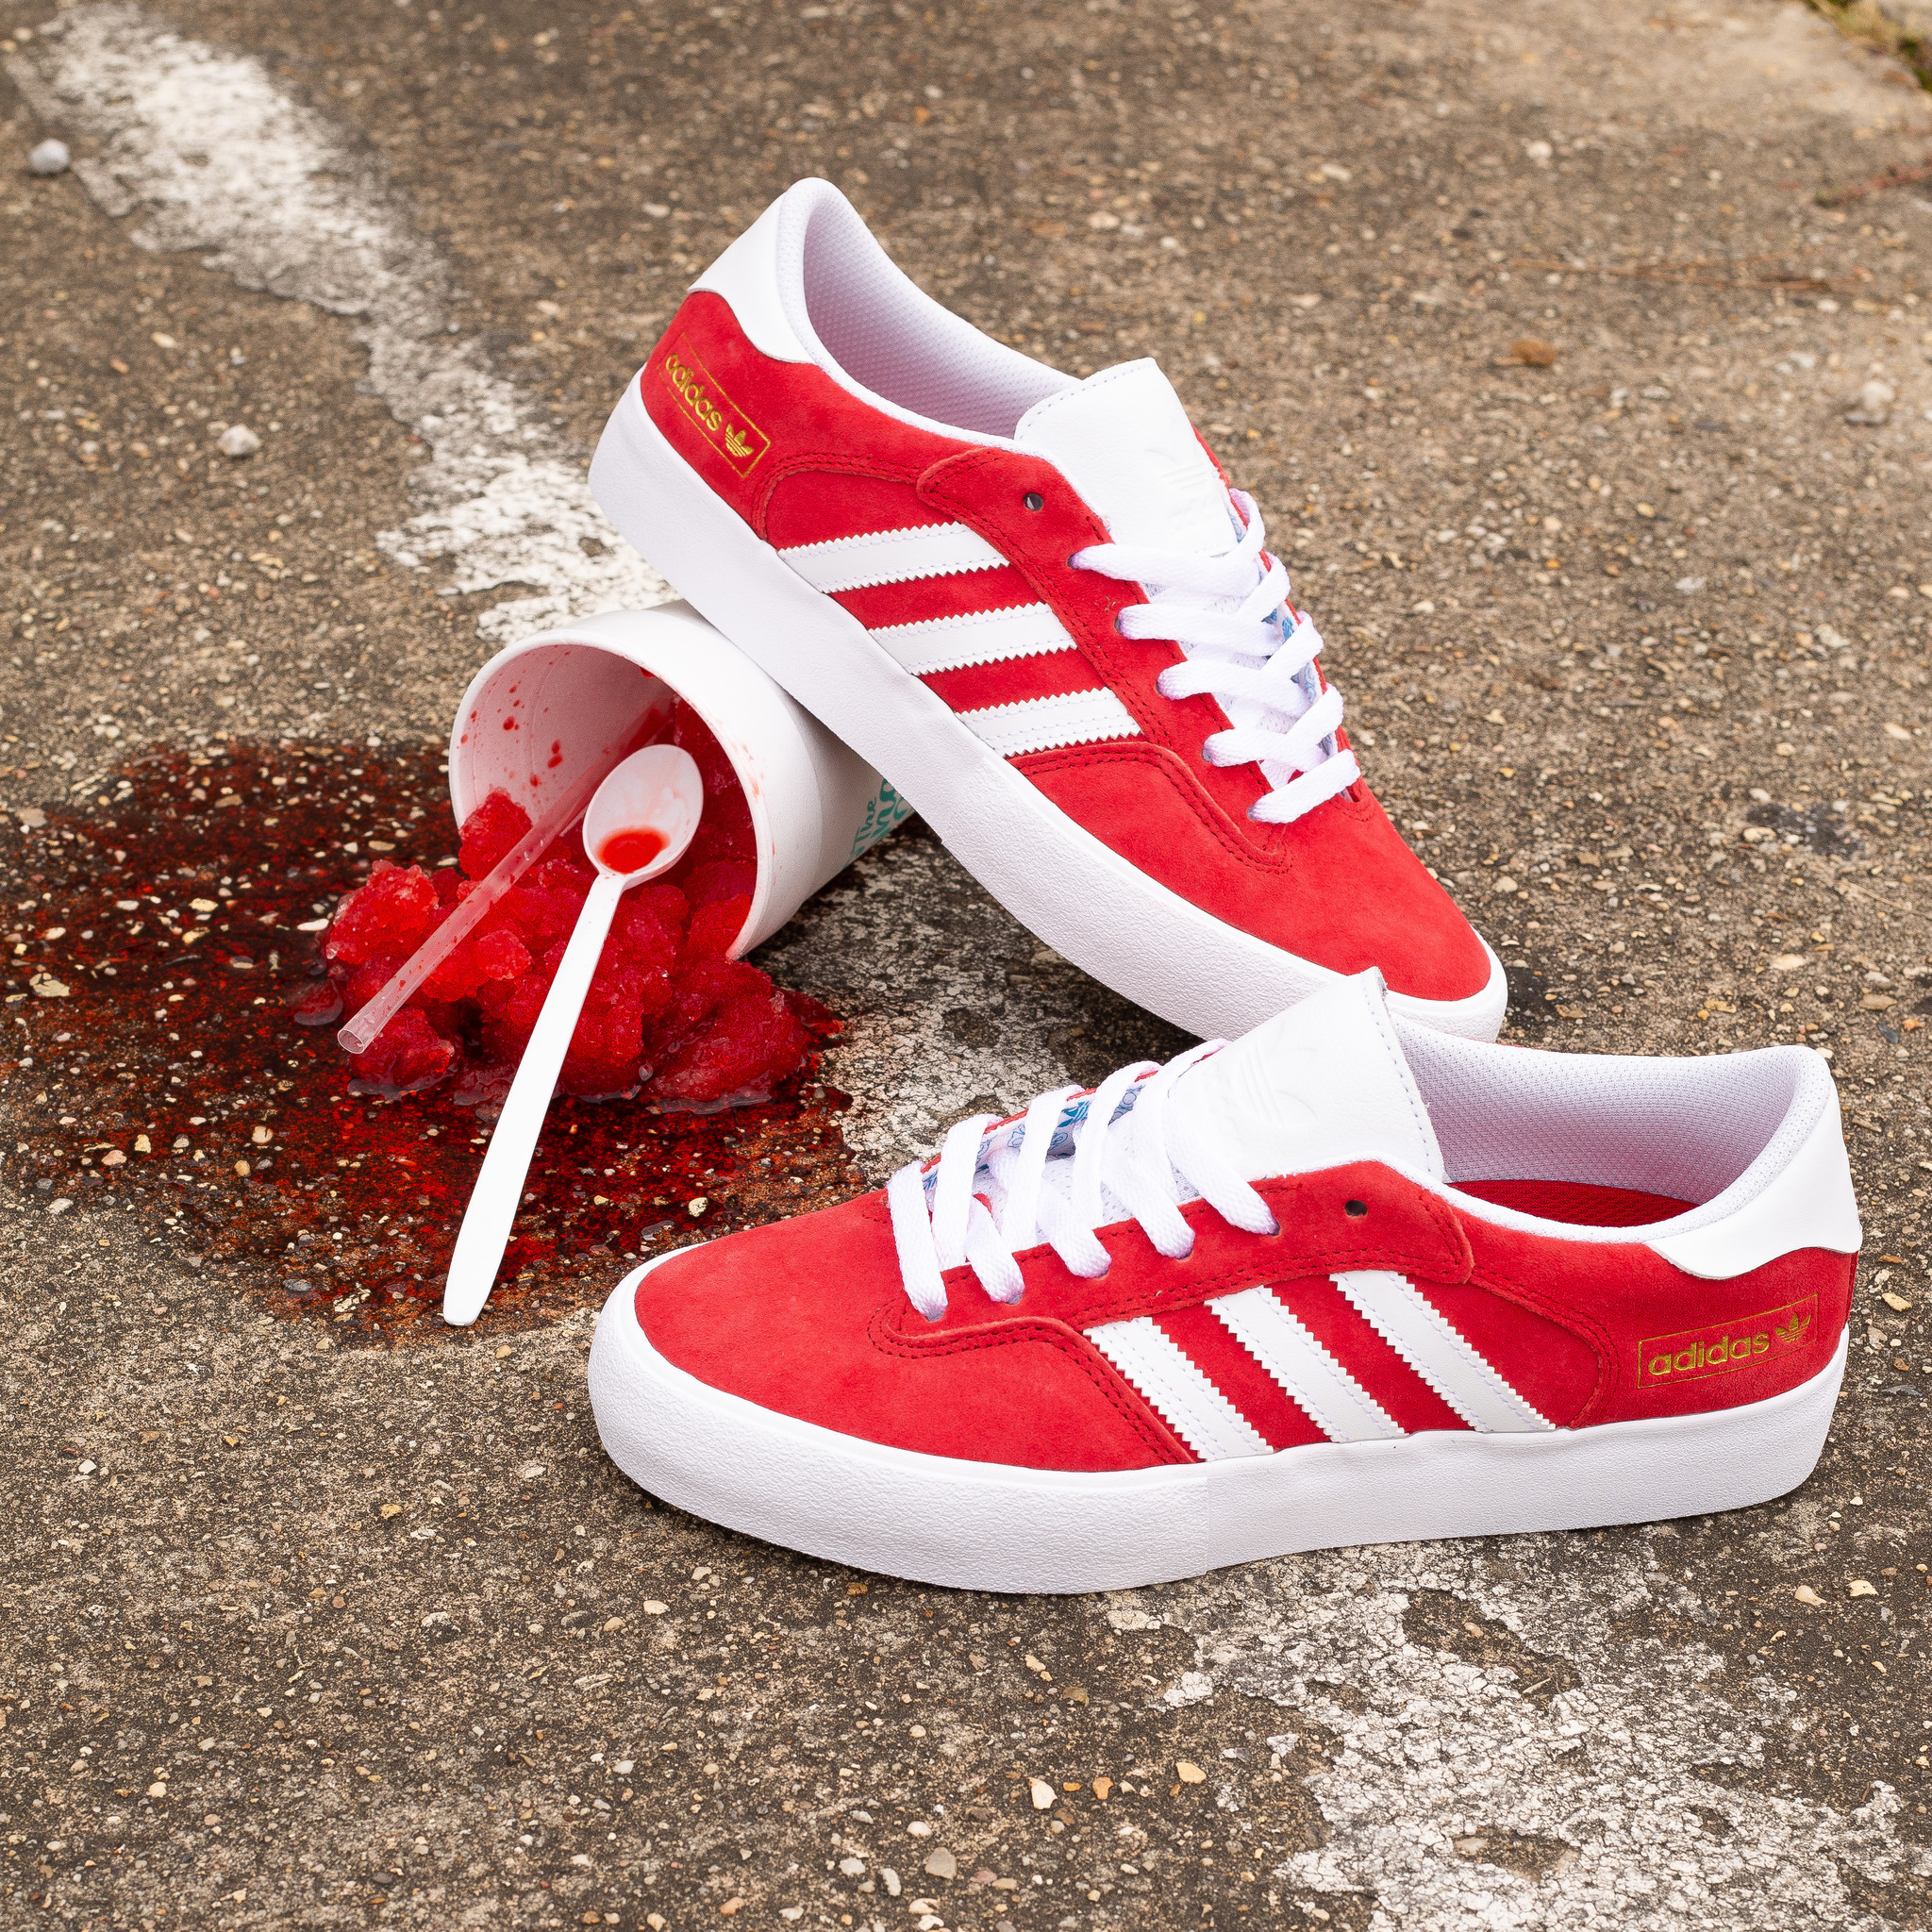 adidas Matchbreak Super Red/White